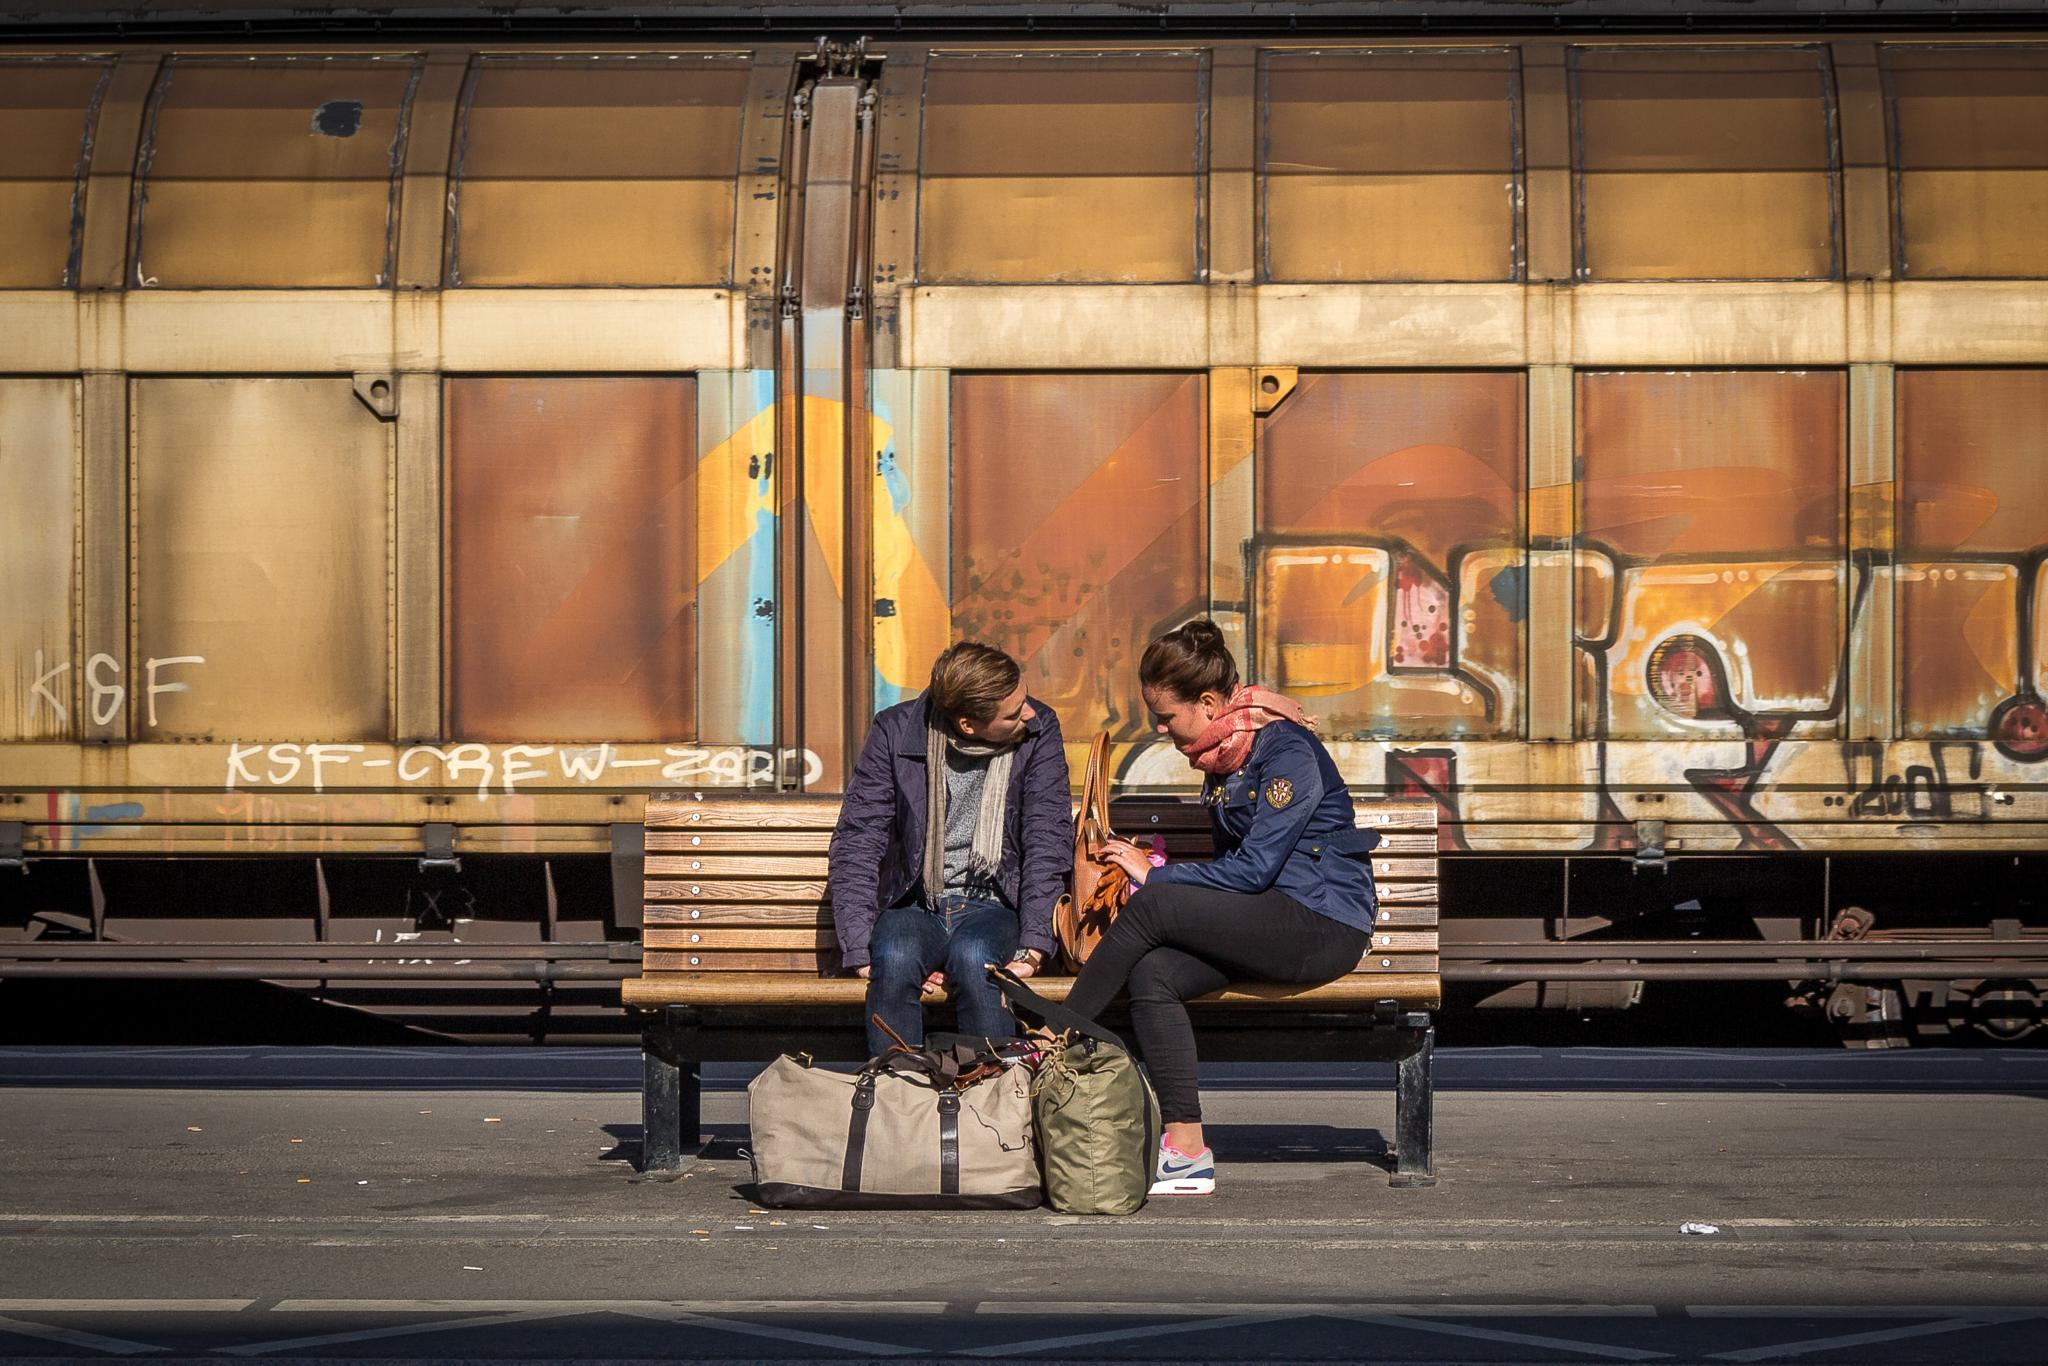 Waiting for the train. by Magnus Bengtsson